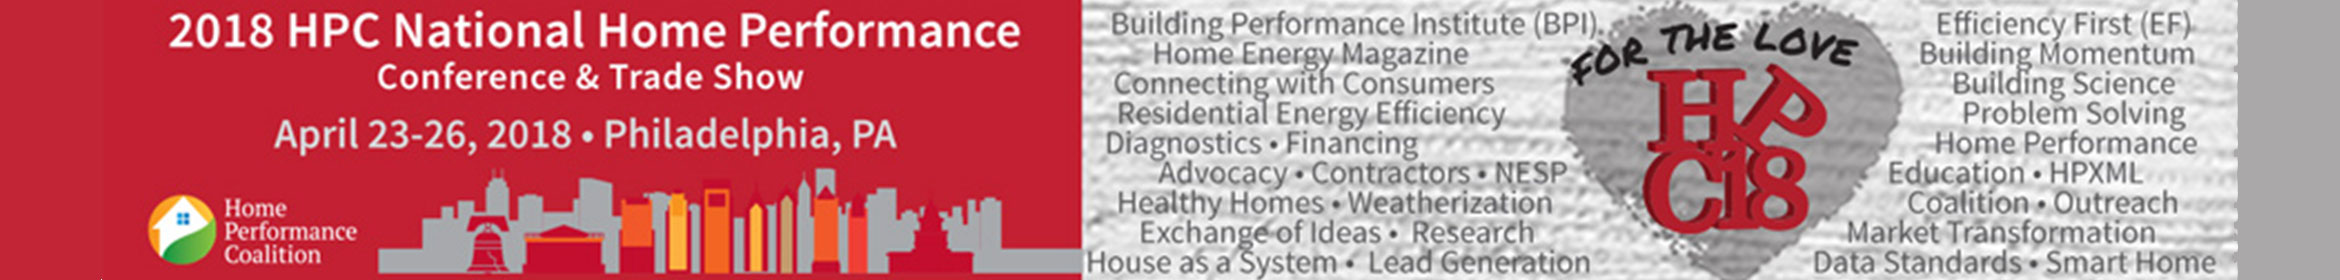 2018 HPC National Home Performance Conference Main banner